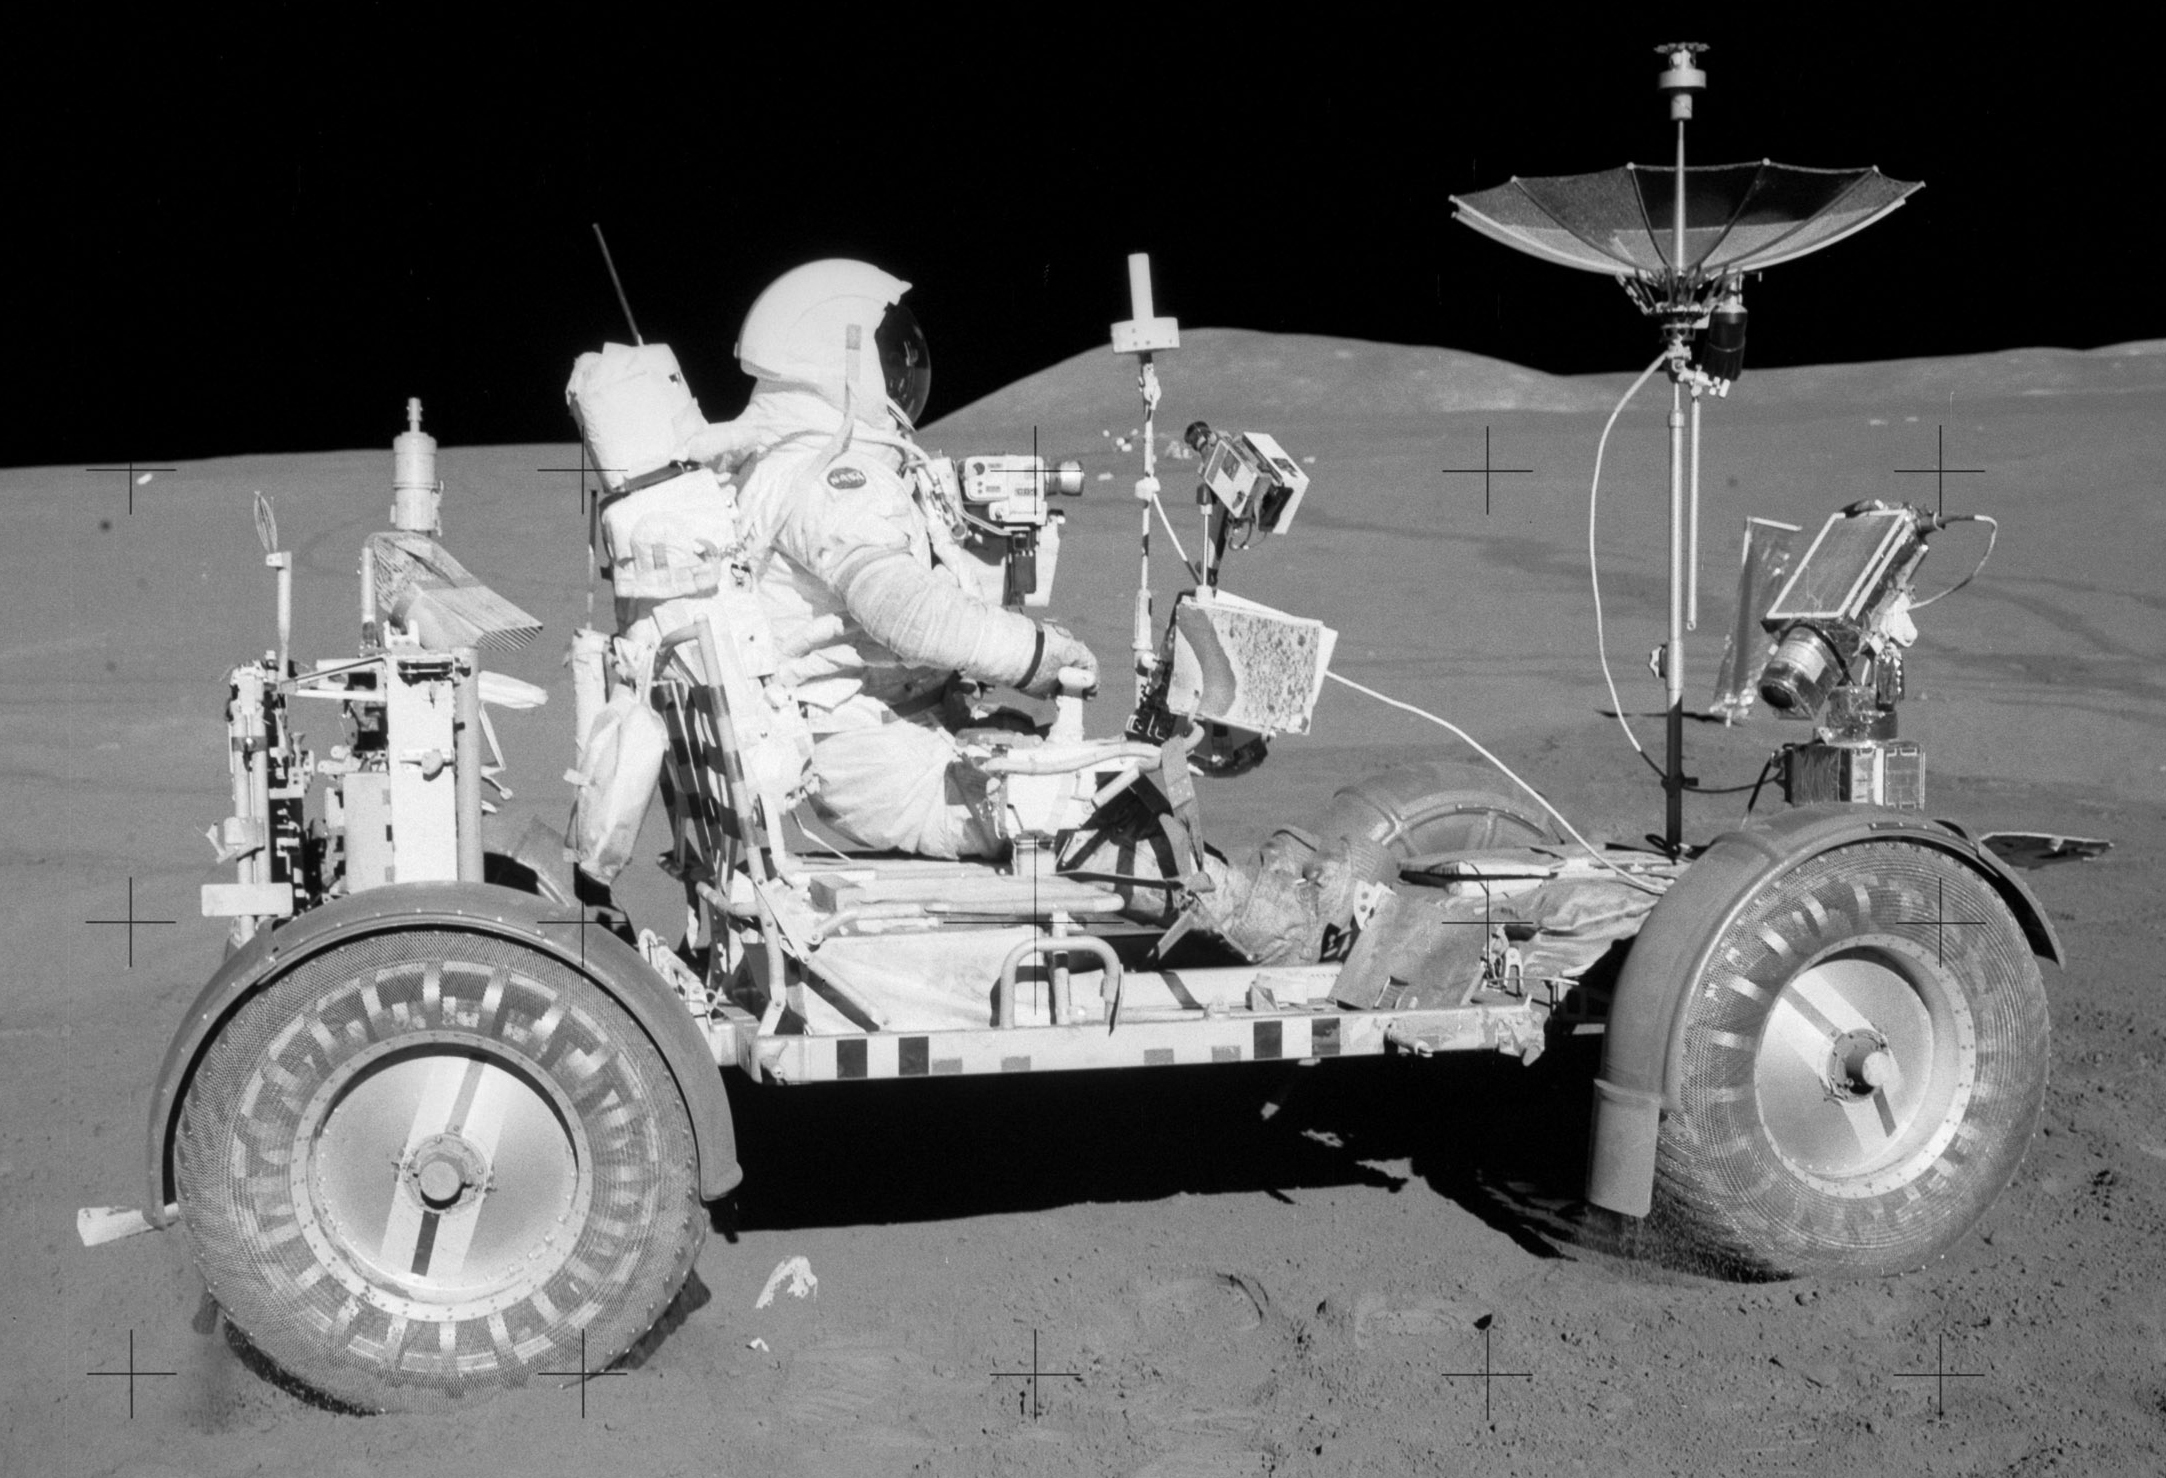 File:Apollo15LunarRover2.jpg - Wikimedia Commons